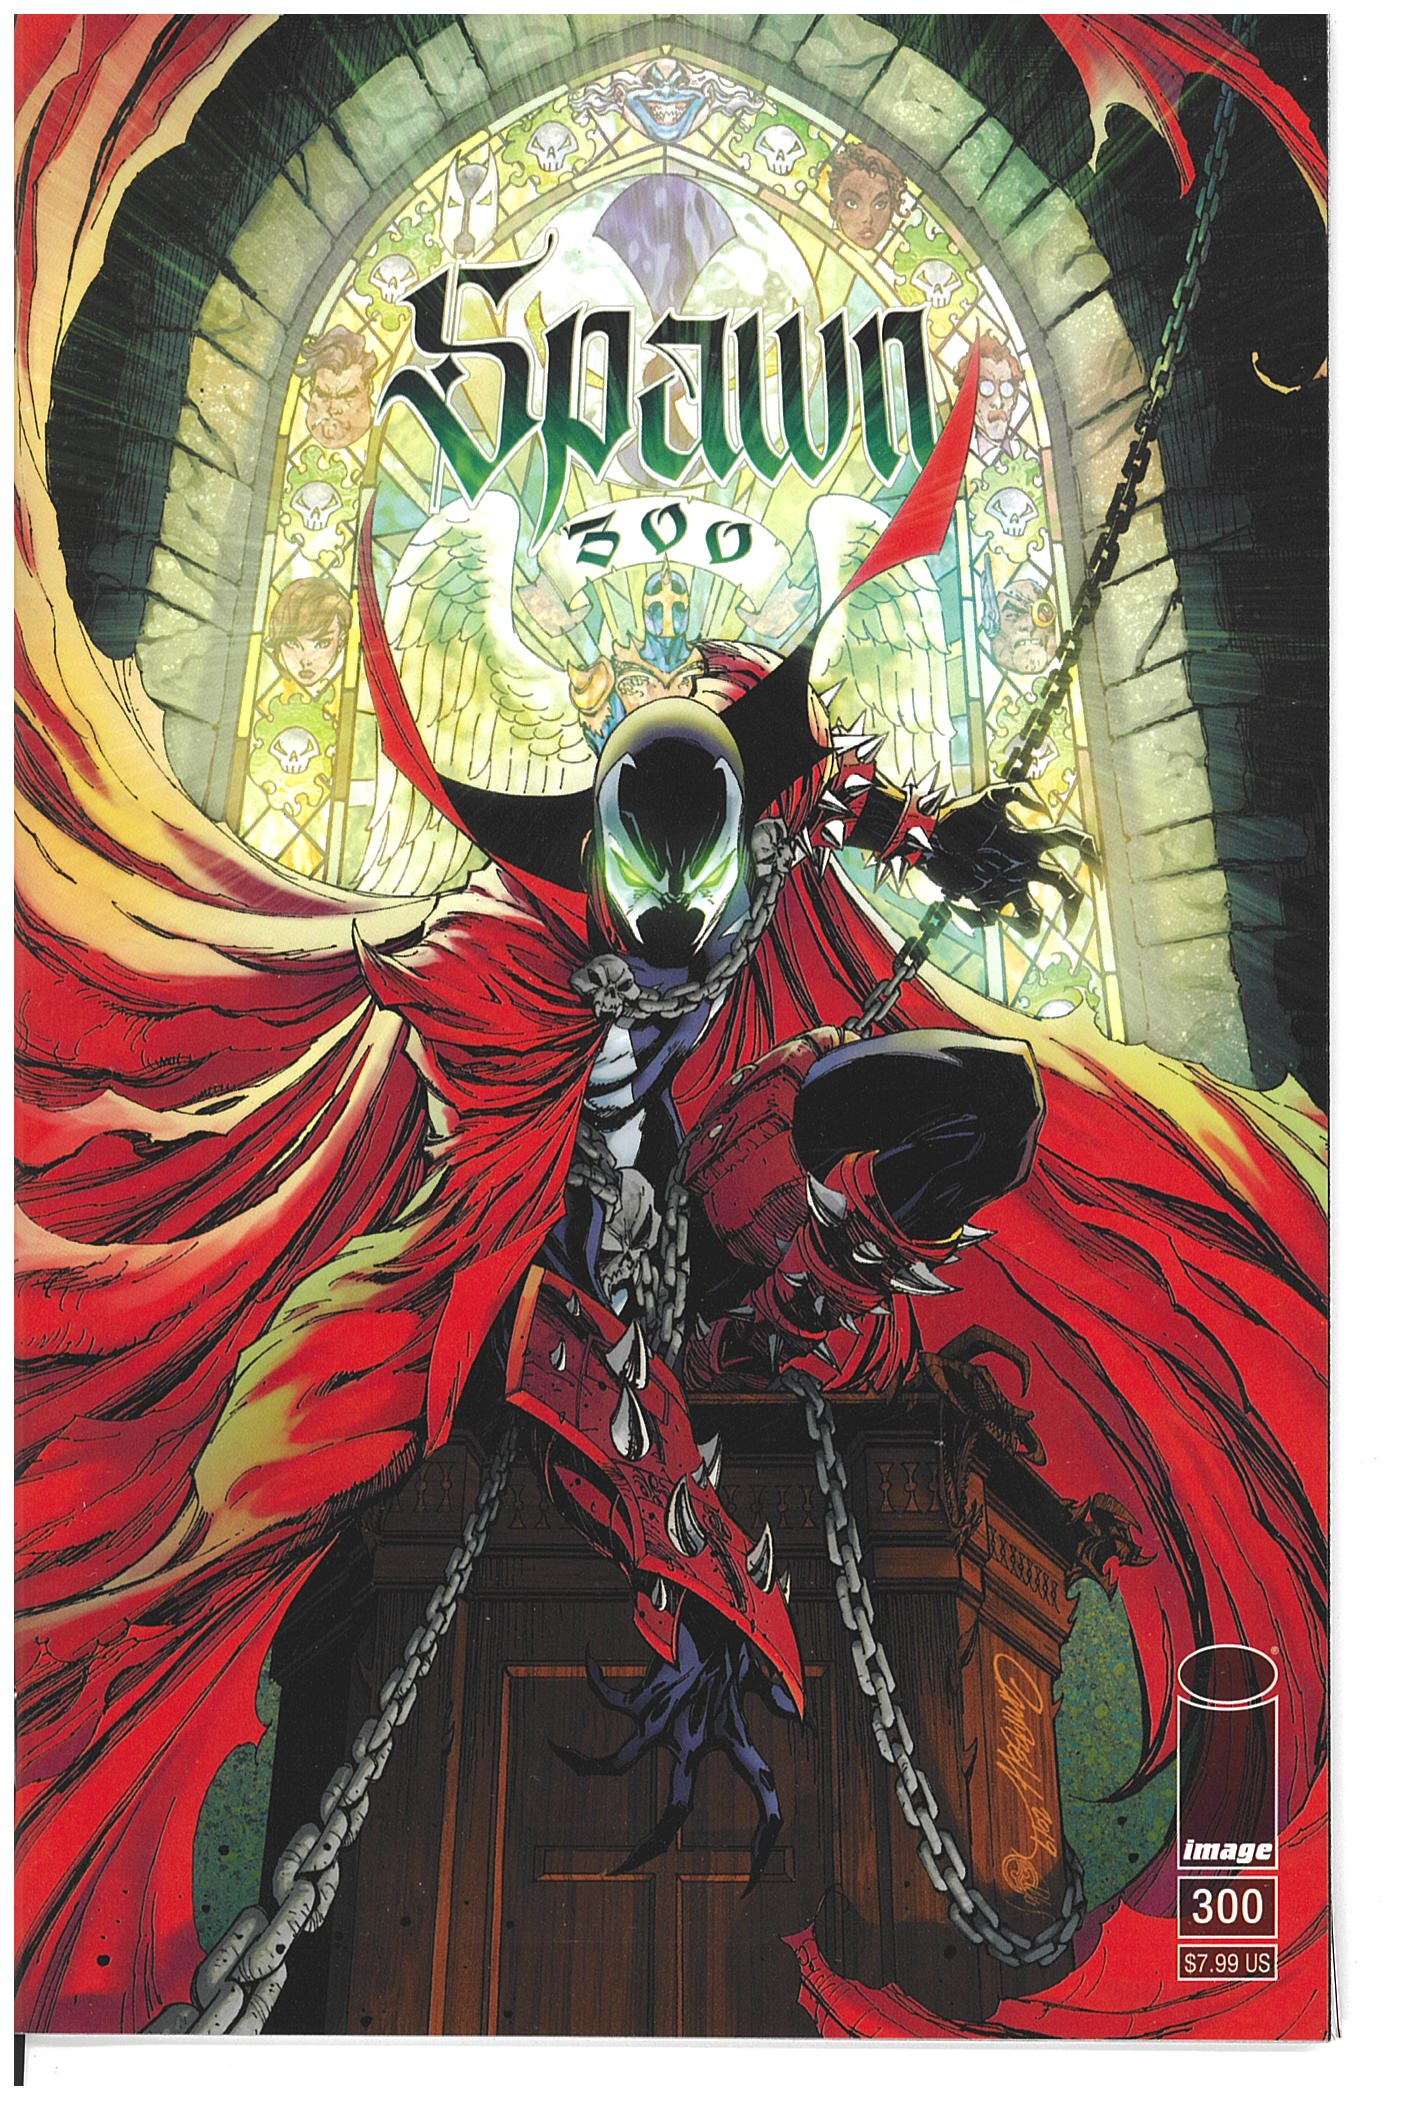 Spawn #300 cover G J. Scott Campbell variant 2019